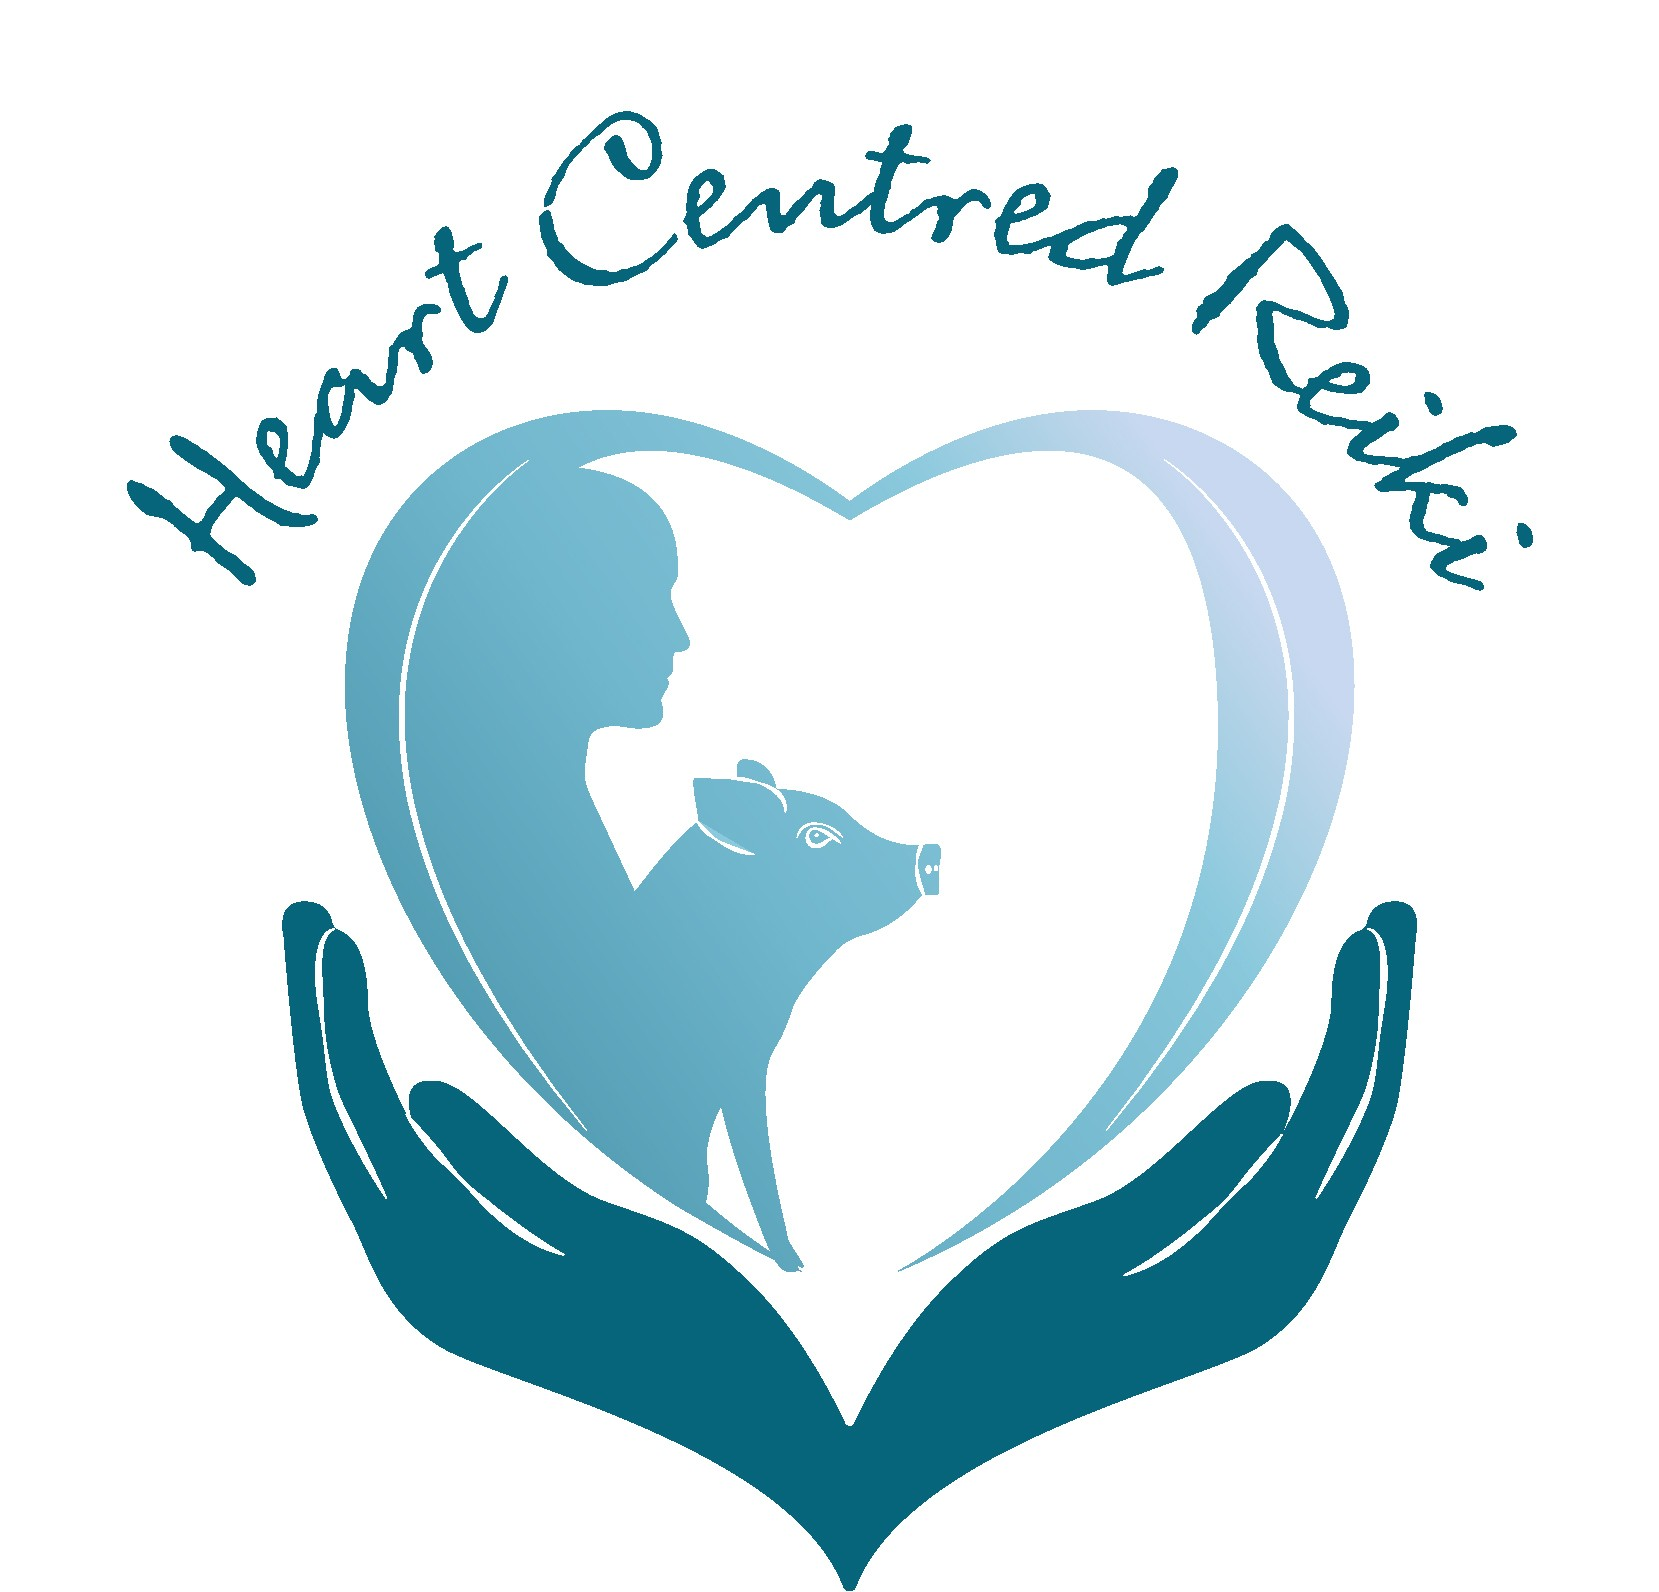 Heart Centred Reiki